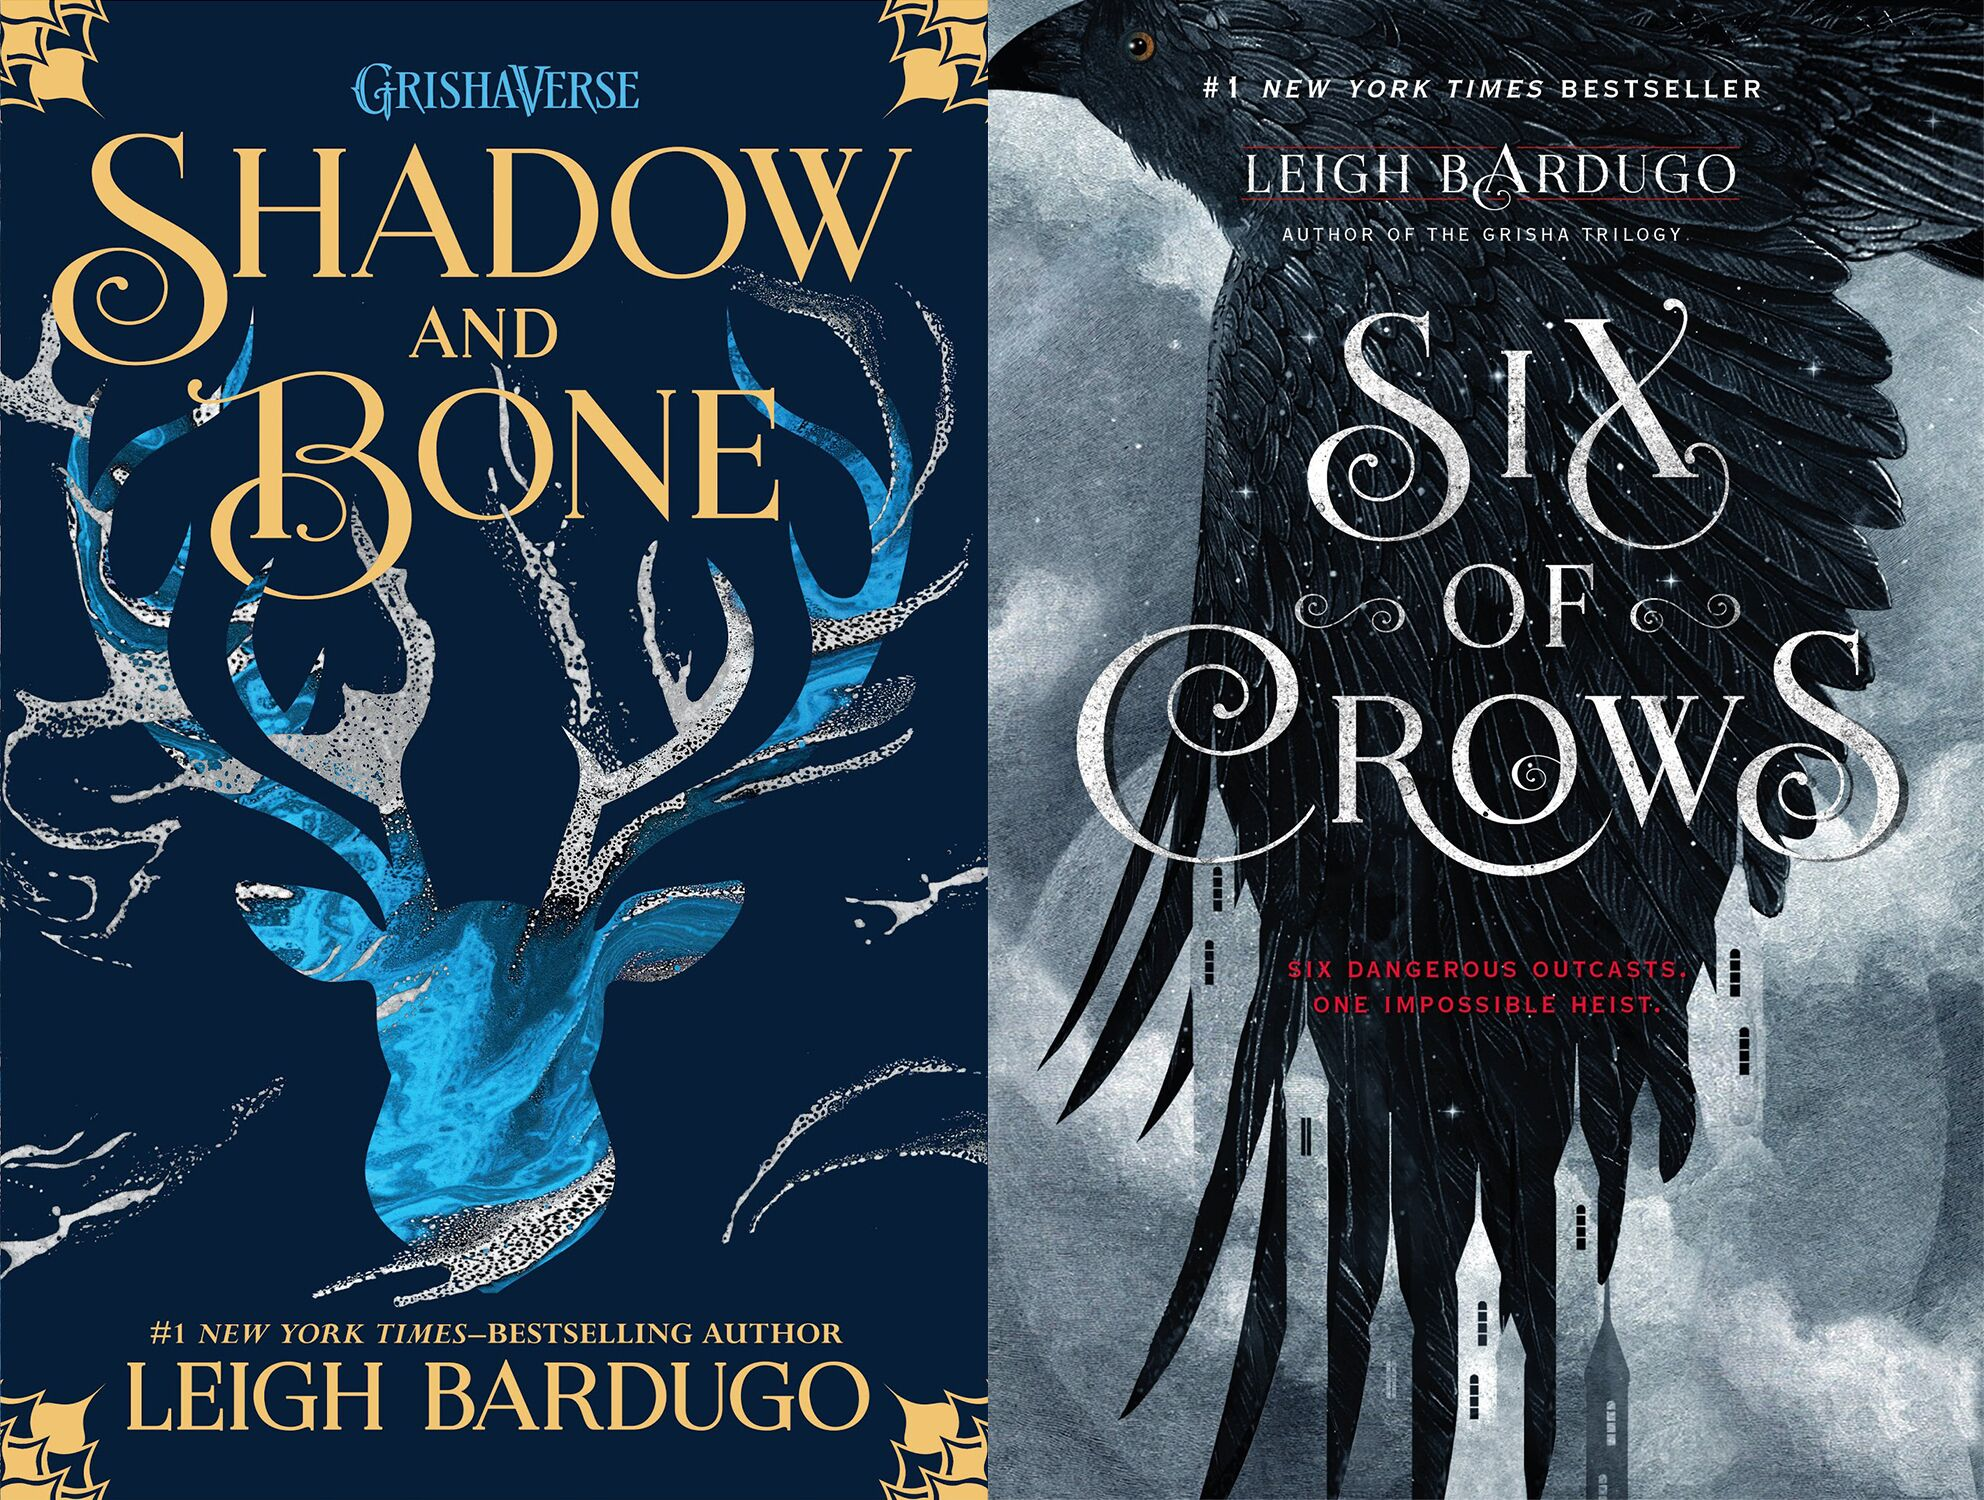 Shadow and Bone Netflix series: 5 things we can't wait for